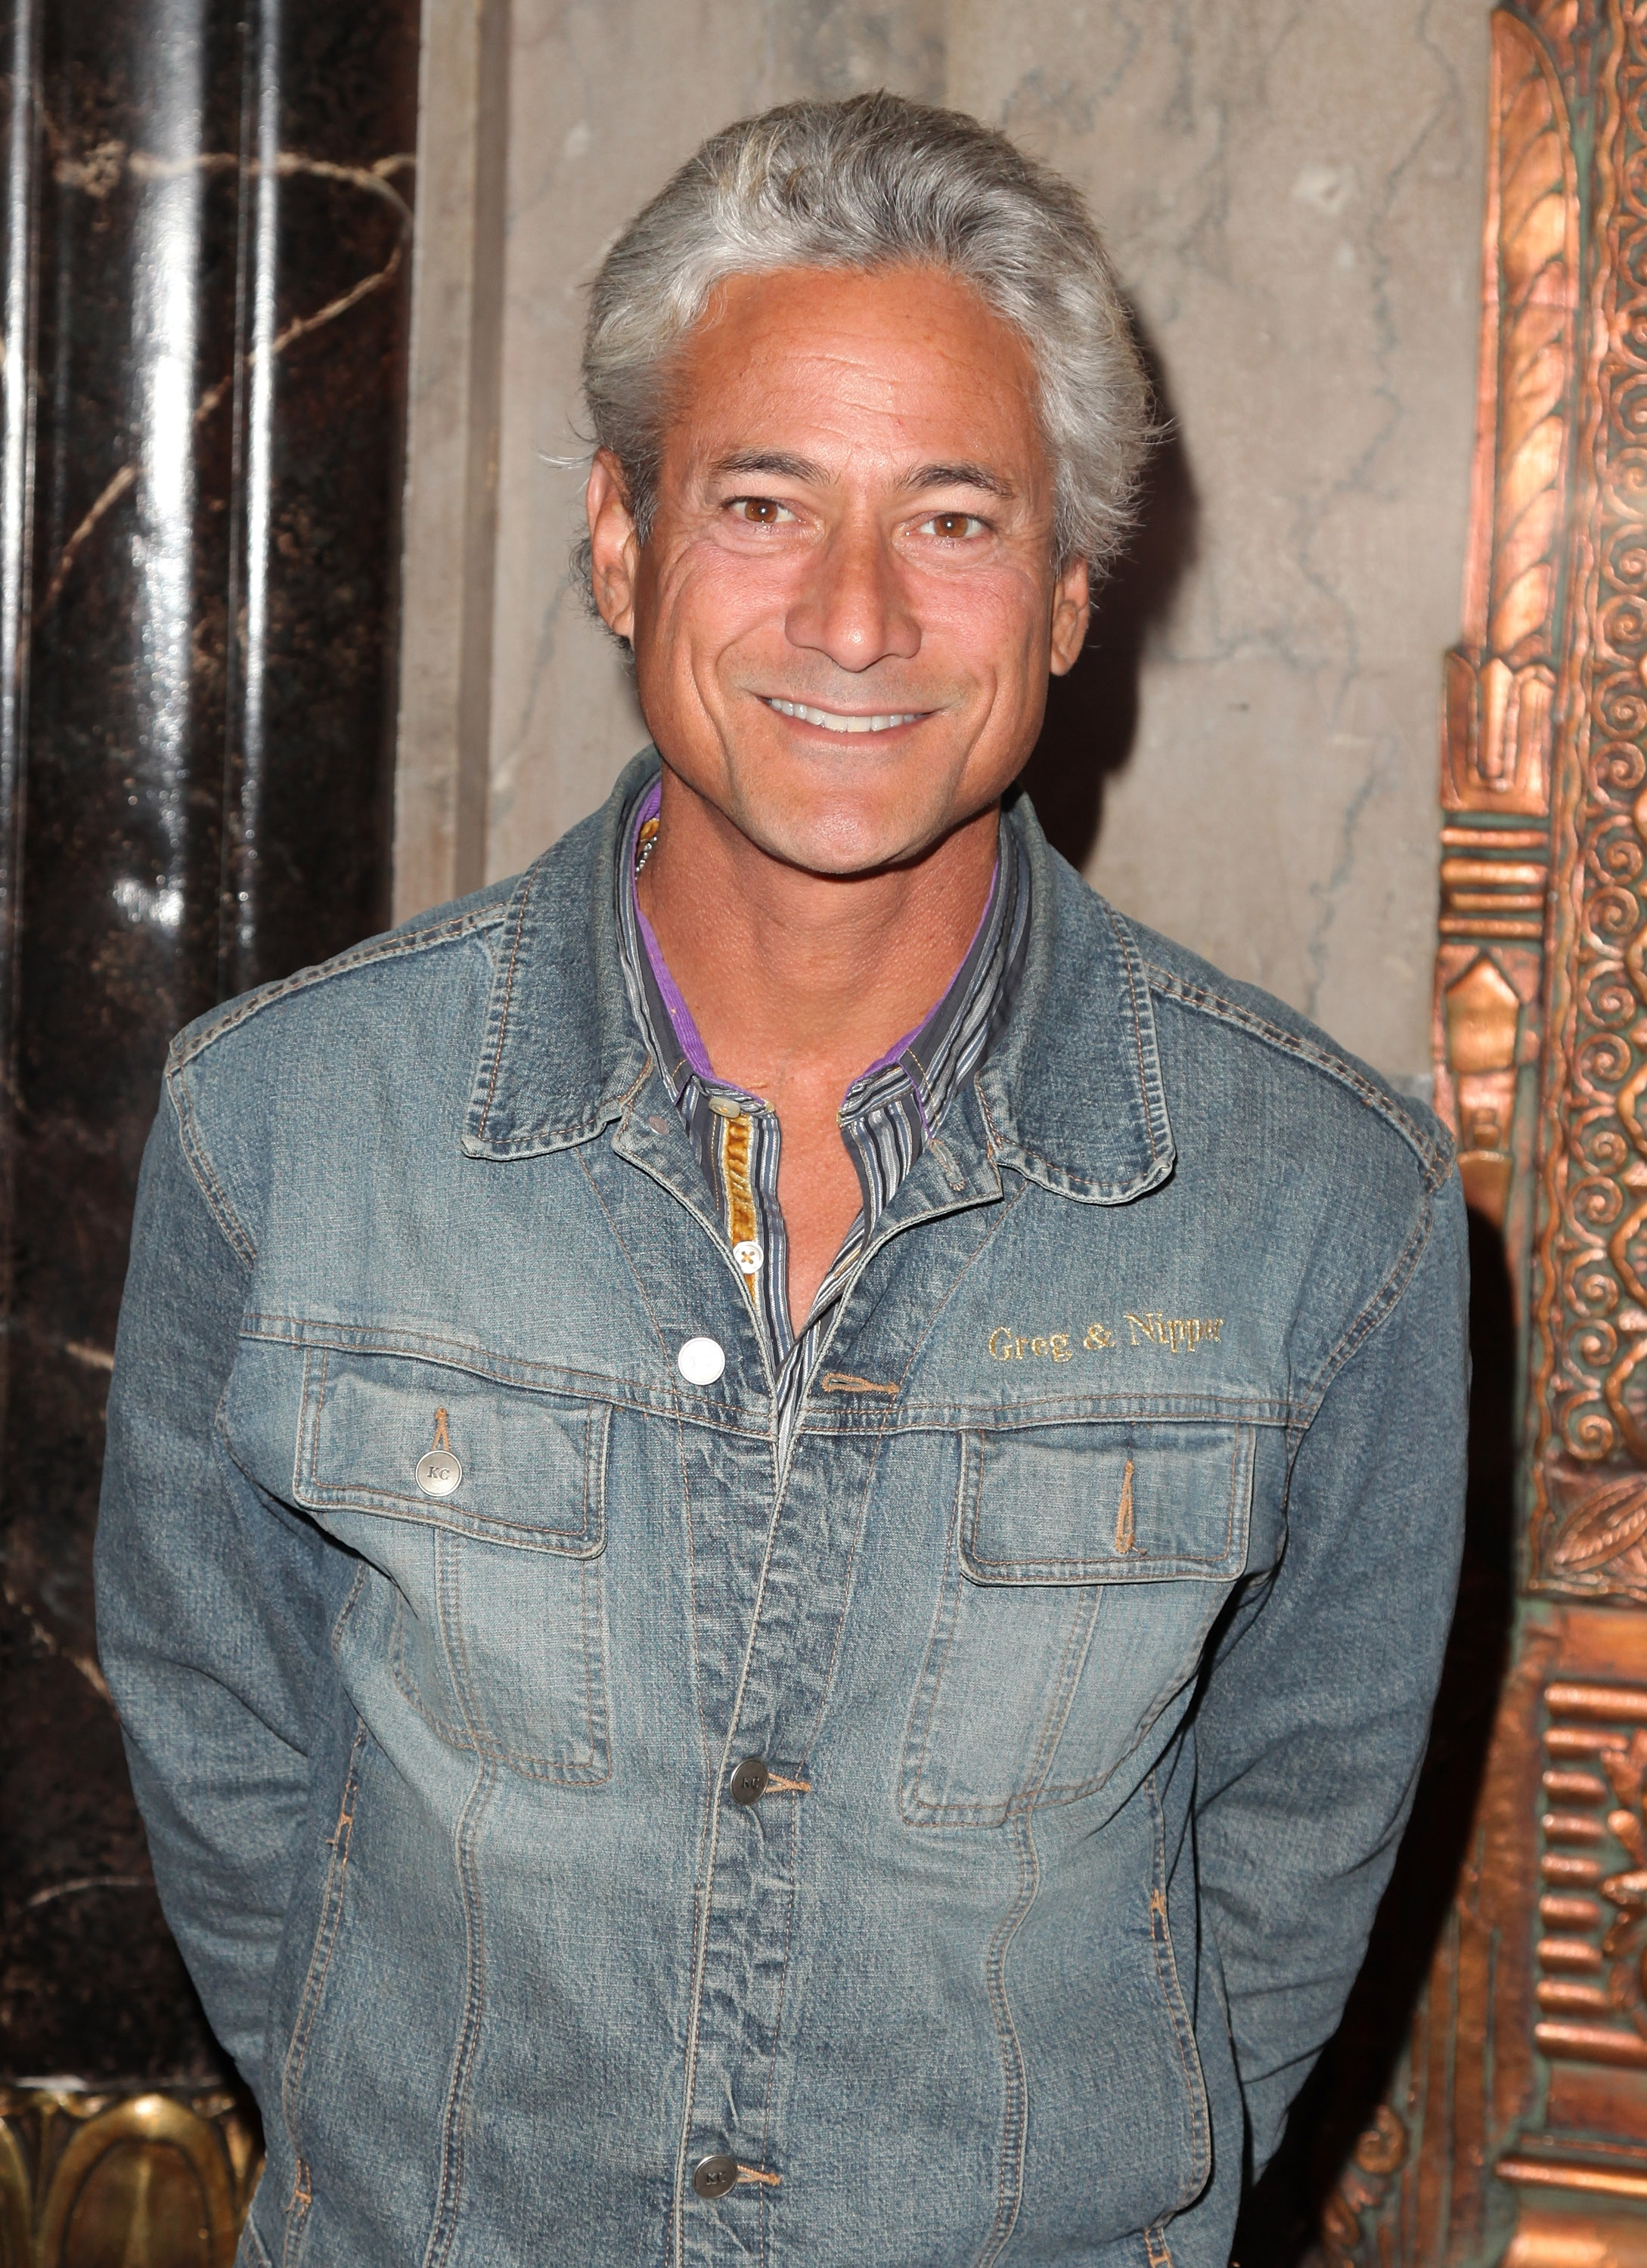 Fans Push for Greg Louganis To Be on DWTS